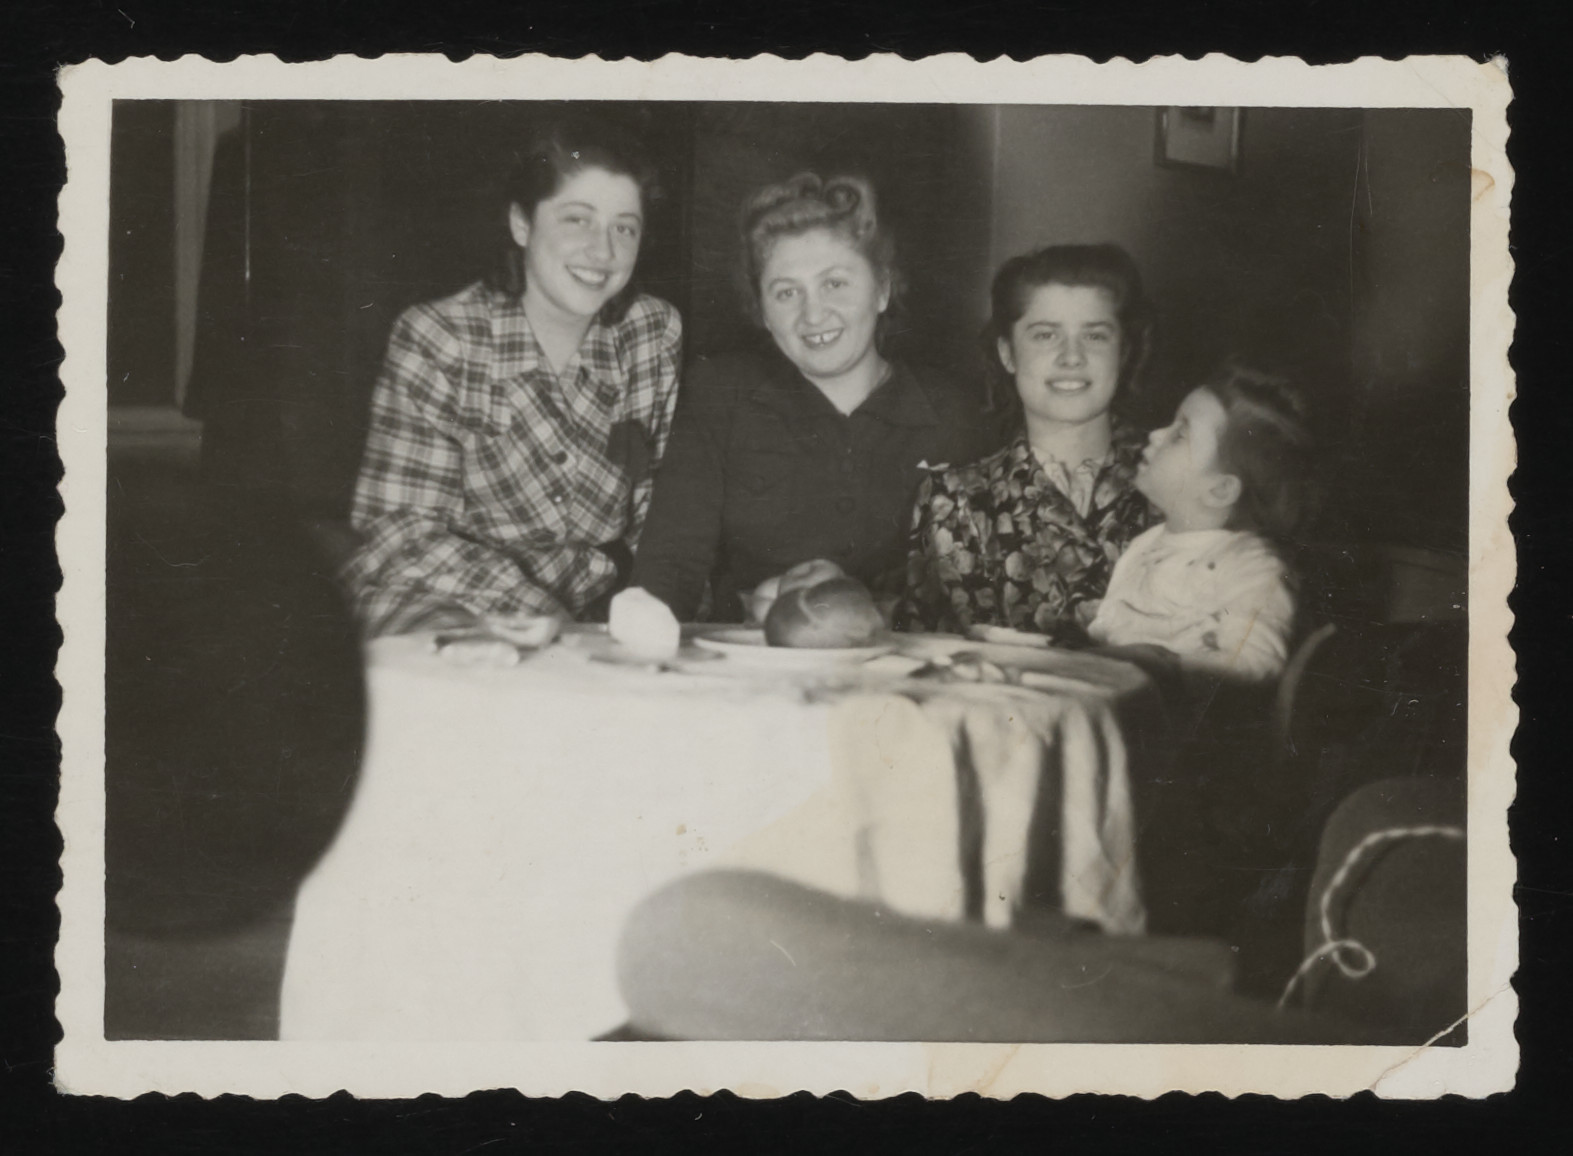 Clara Kalb (center) poses with two sisters her husband, Jewish rescuer Ben Zion Kalb, helped smuggle into Slovakia from Poland.  Rita Schmidt (later Nussbaum) is on the left and Ruth Schmidt (later Gellis) is on the right.